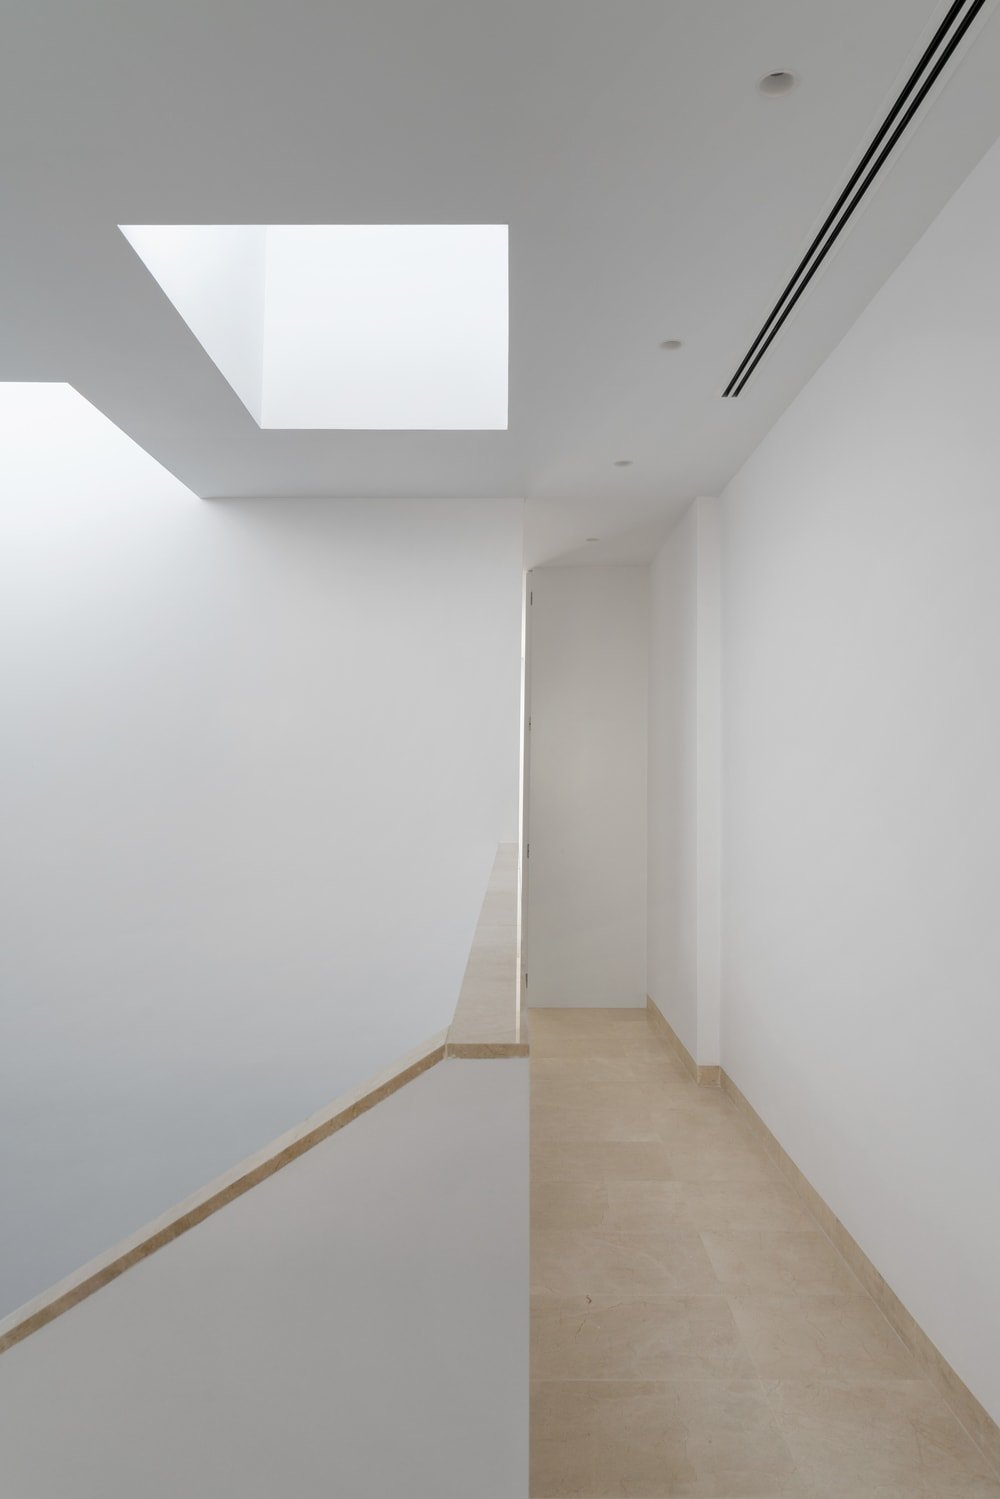 This is the second floor landing with a bright and white look to its ceiling that is augmented by the skylights that bring in natural lighting.